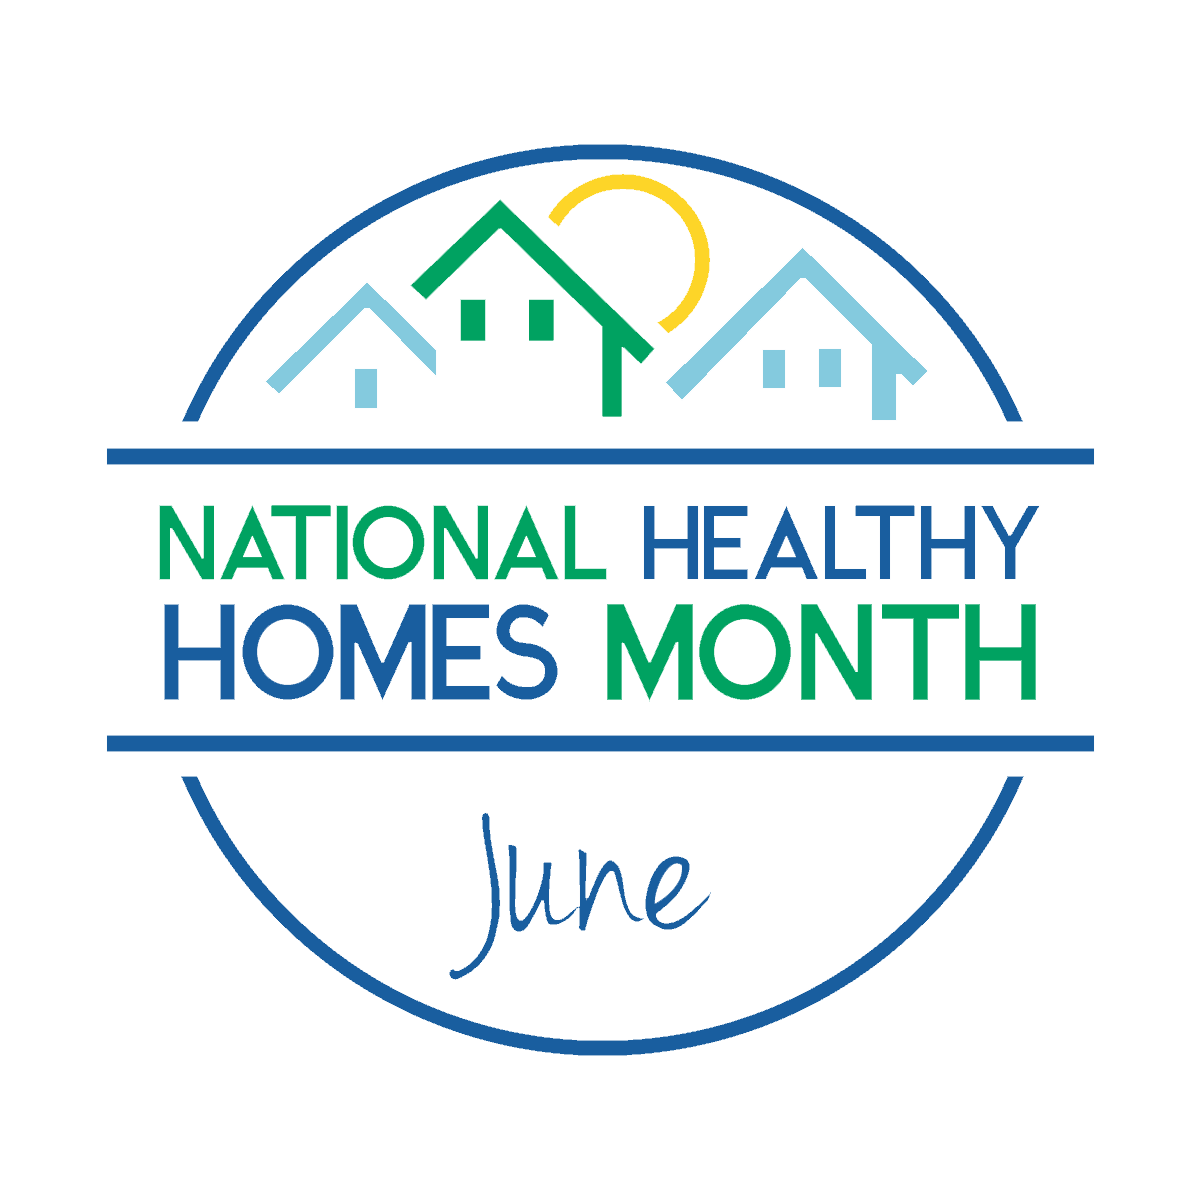 Lead-Free MV Coalition Recognizes June as National Healthy Homes Month